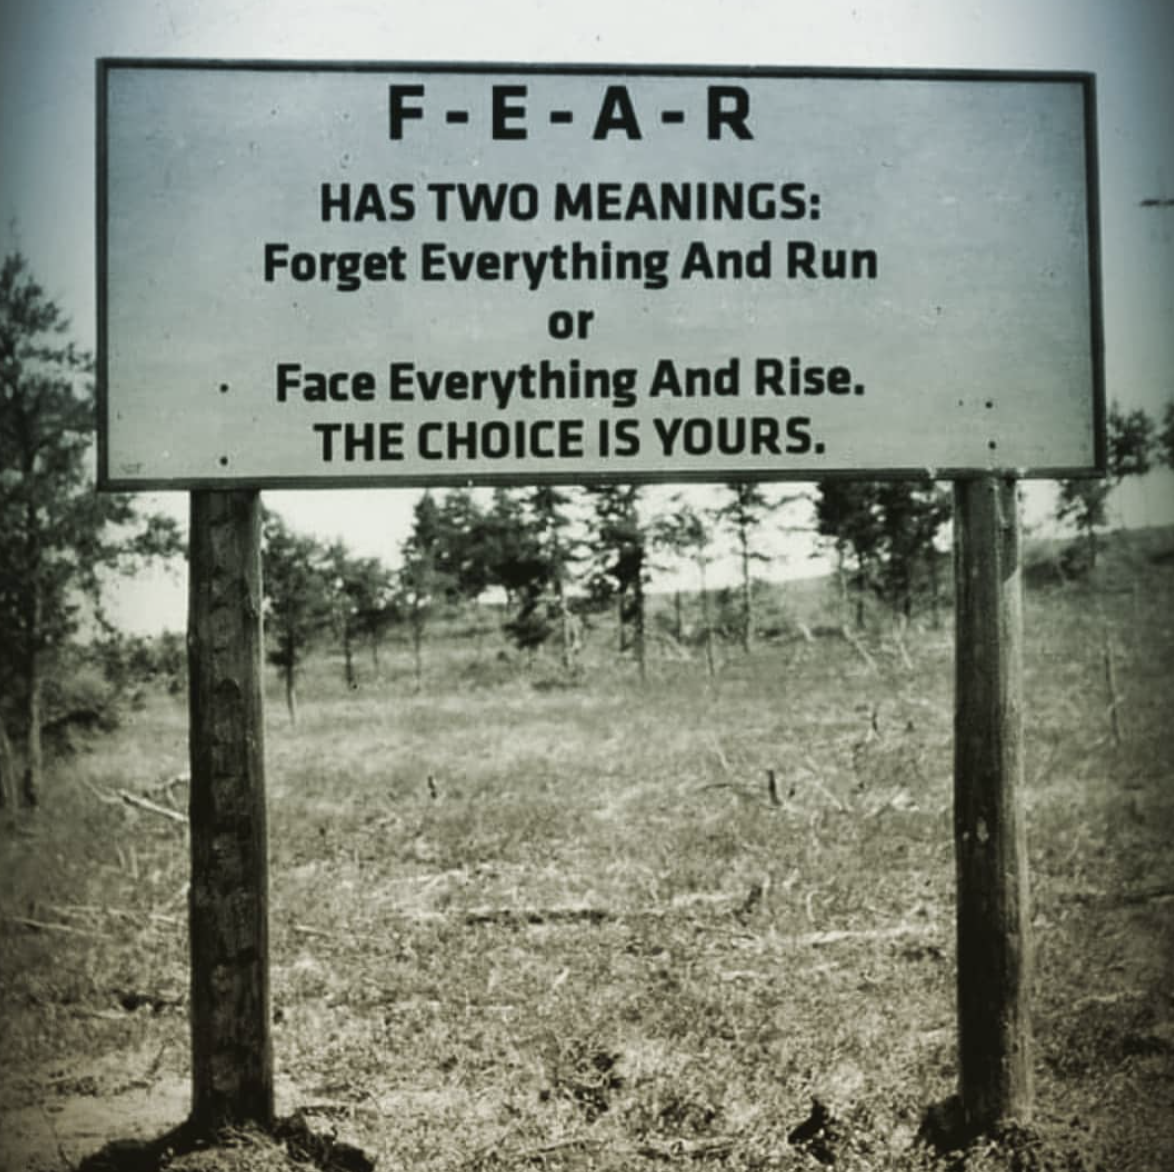 [Image] Fear has two meanings. The choice is yours.